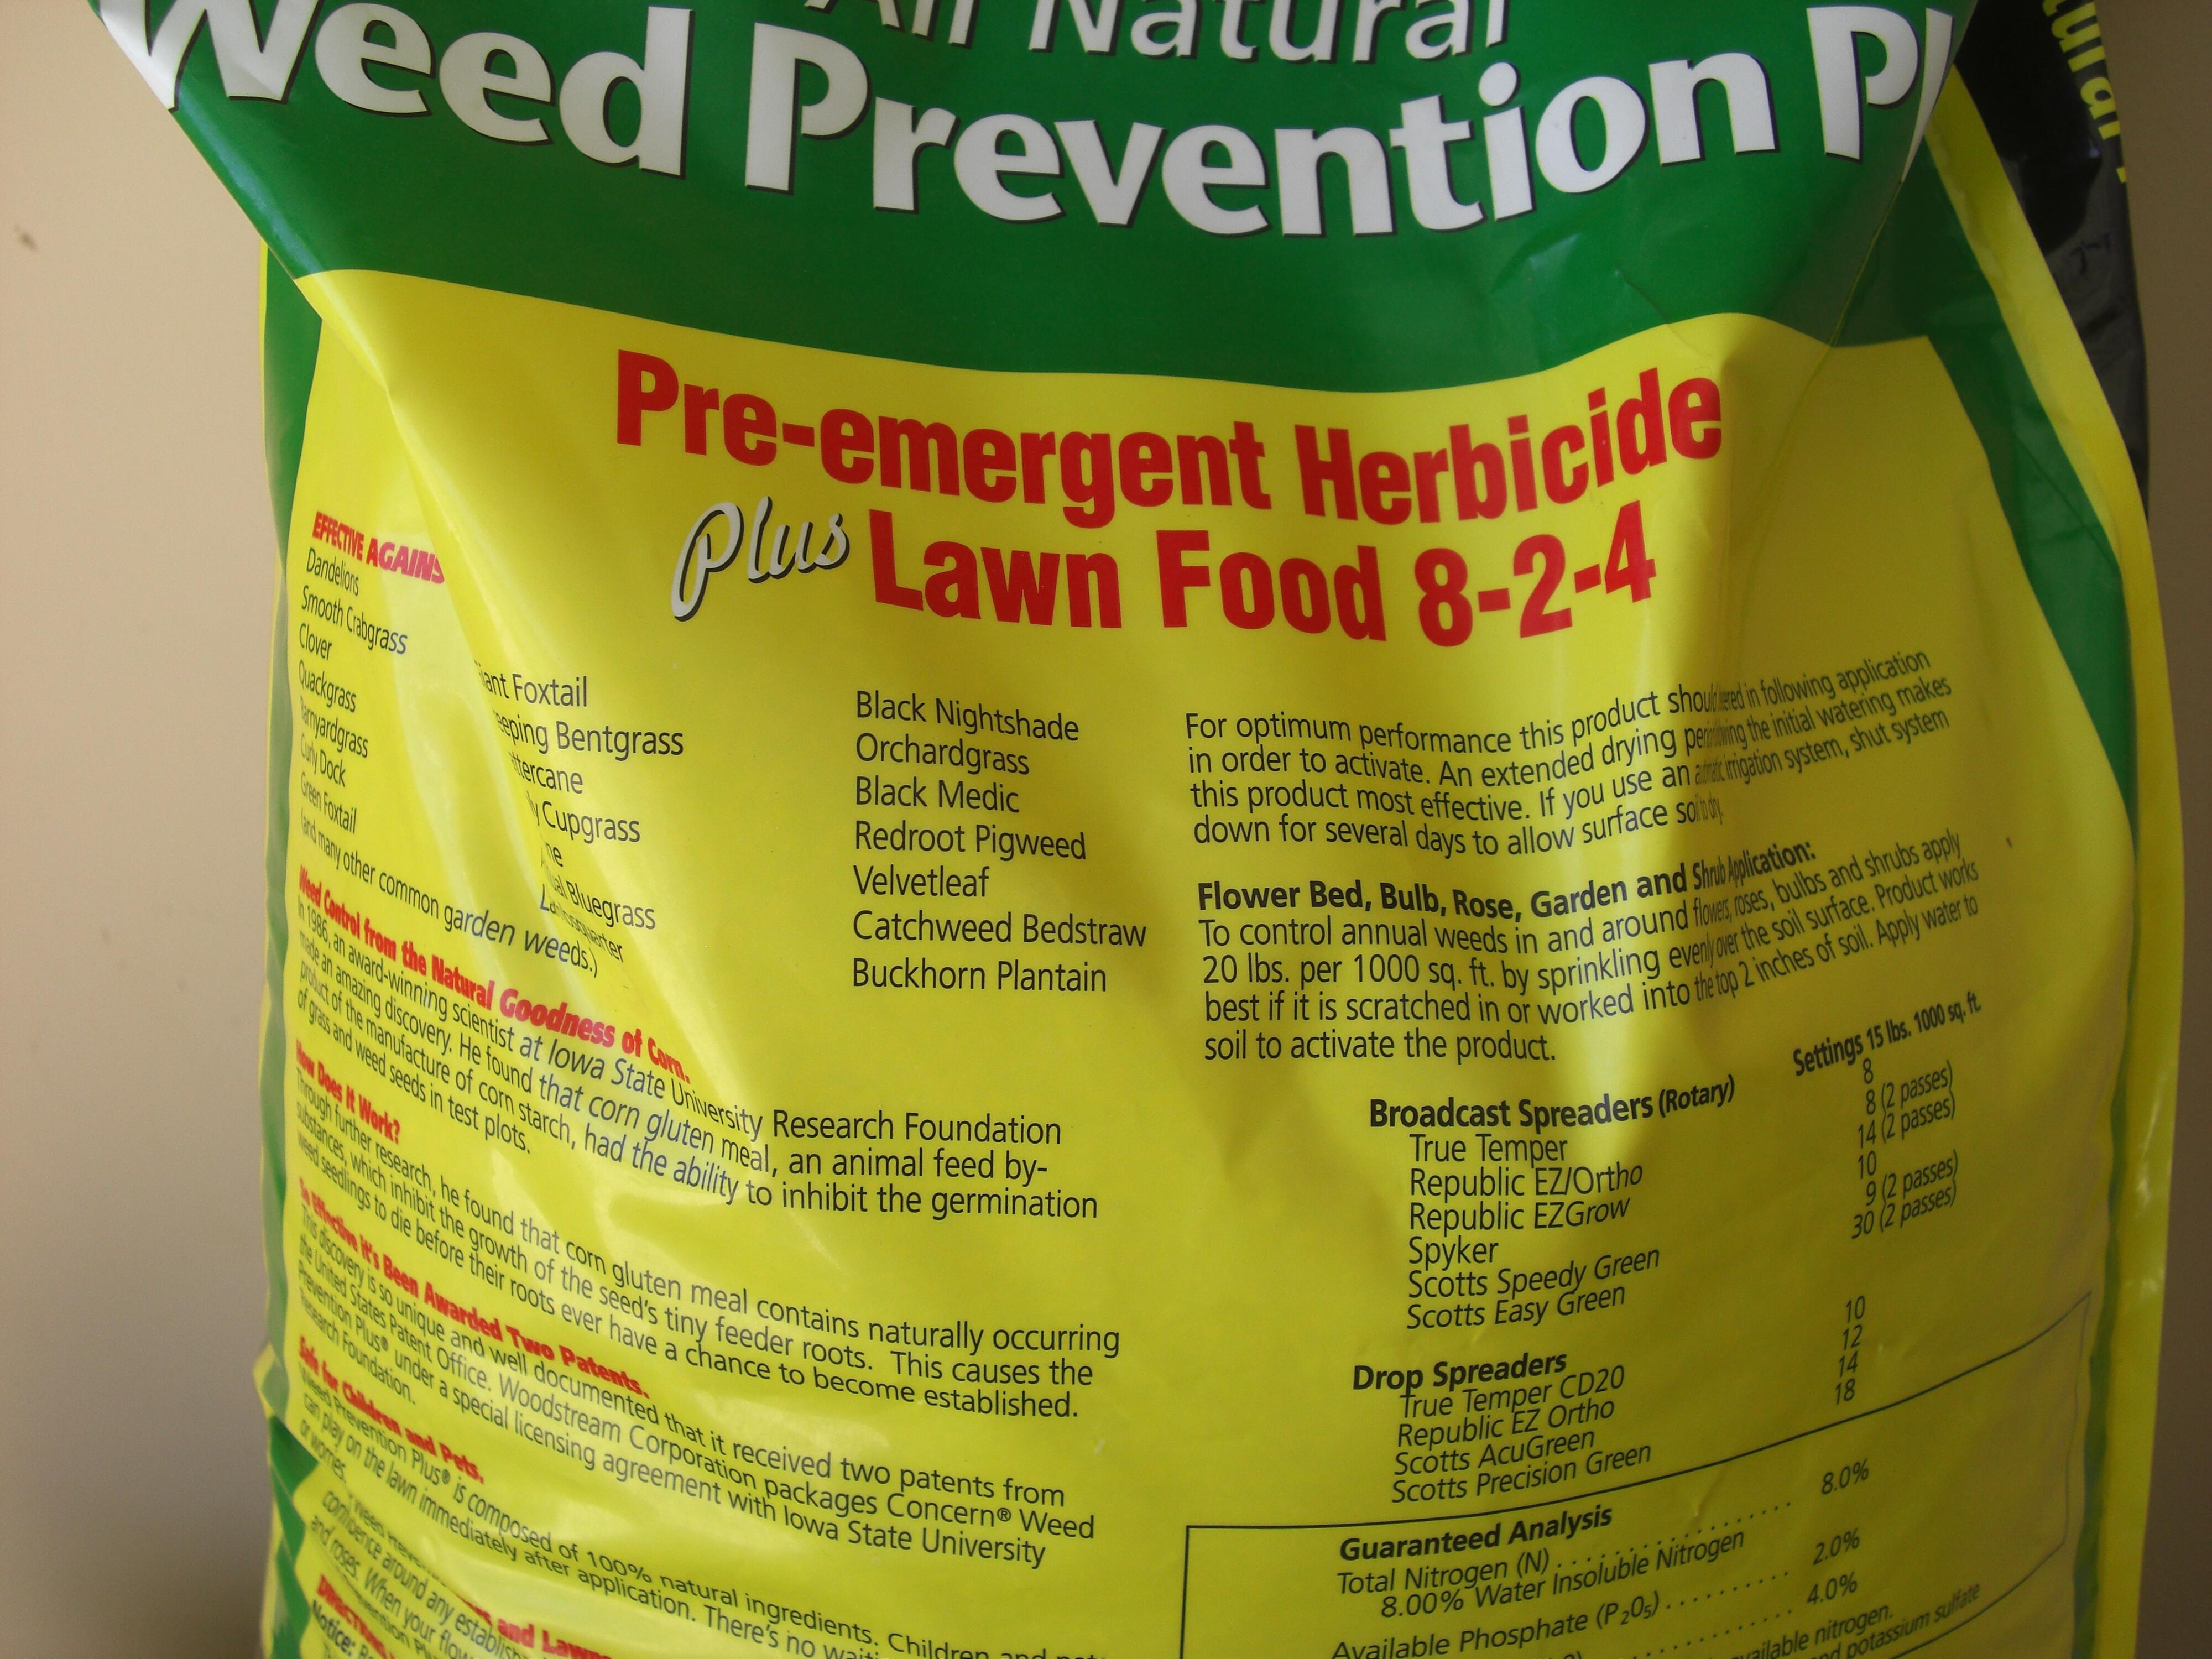 Concern Weed Prevention Plus 100 Natural Corn Gluten Pre